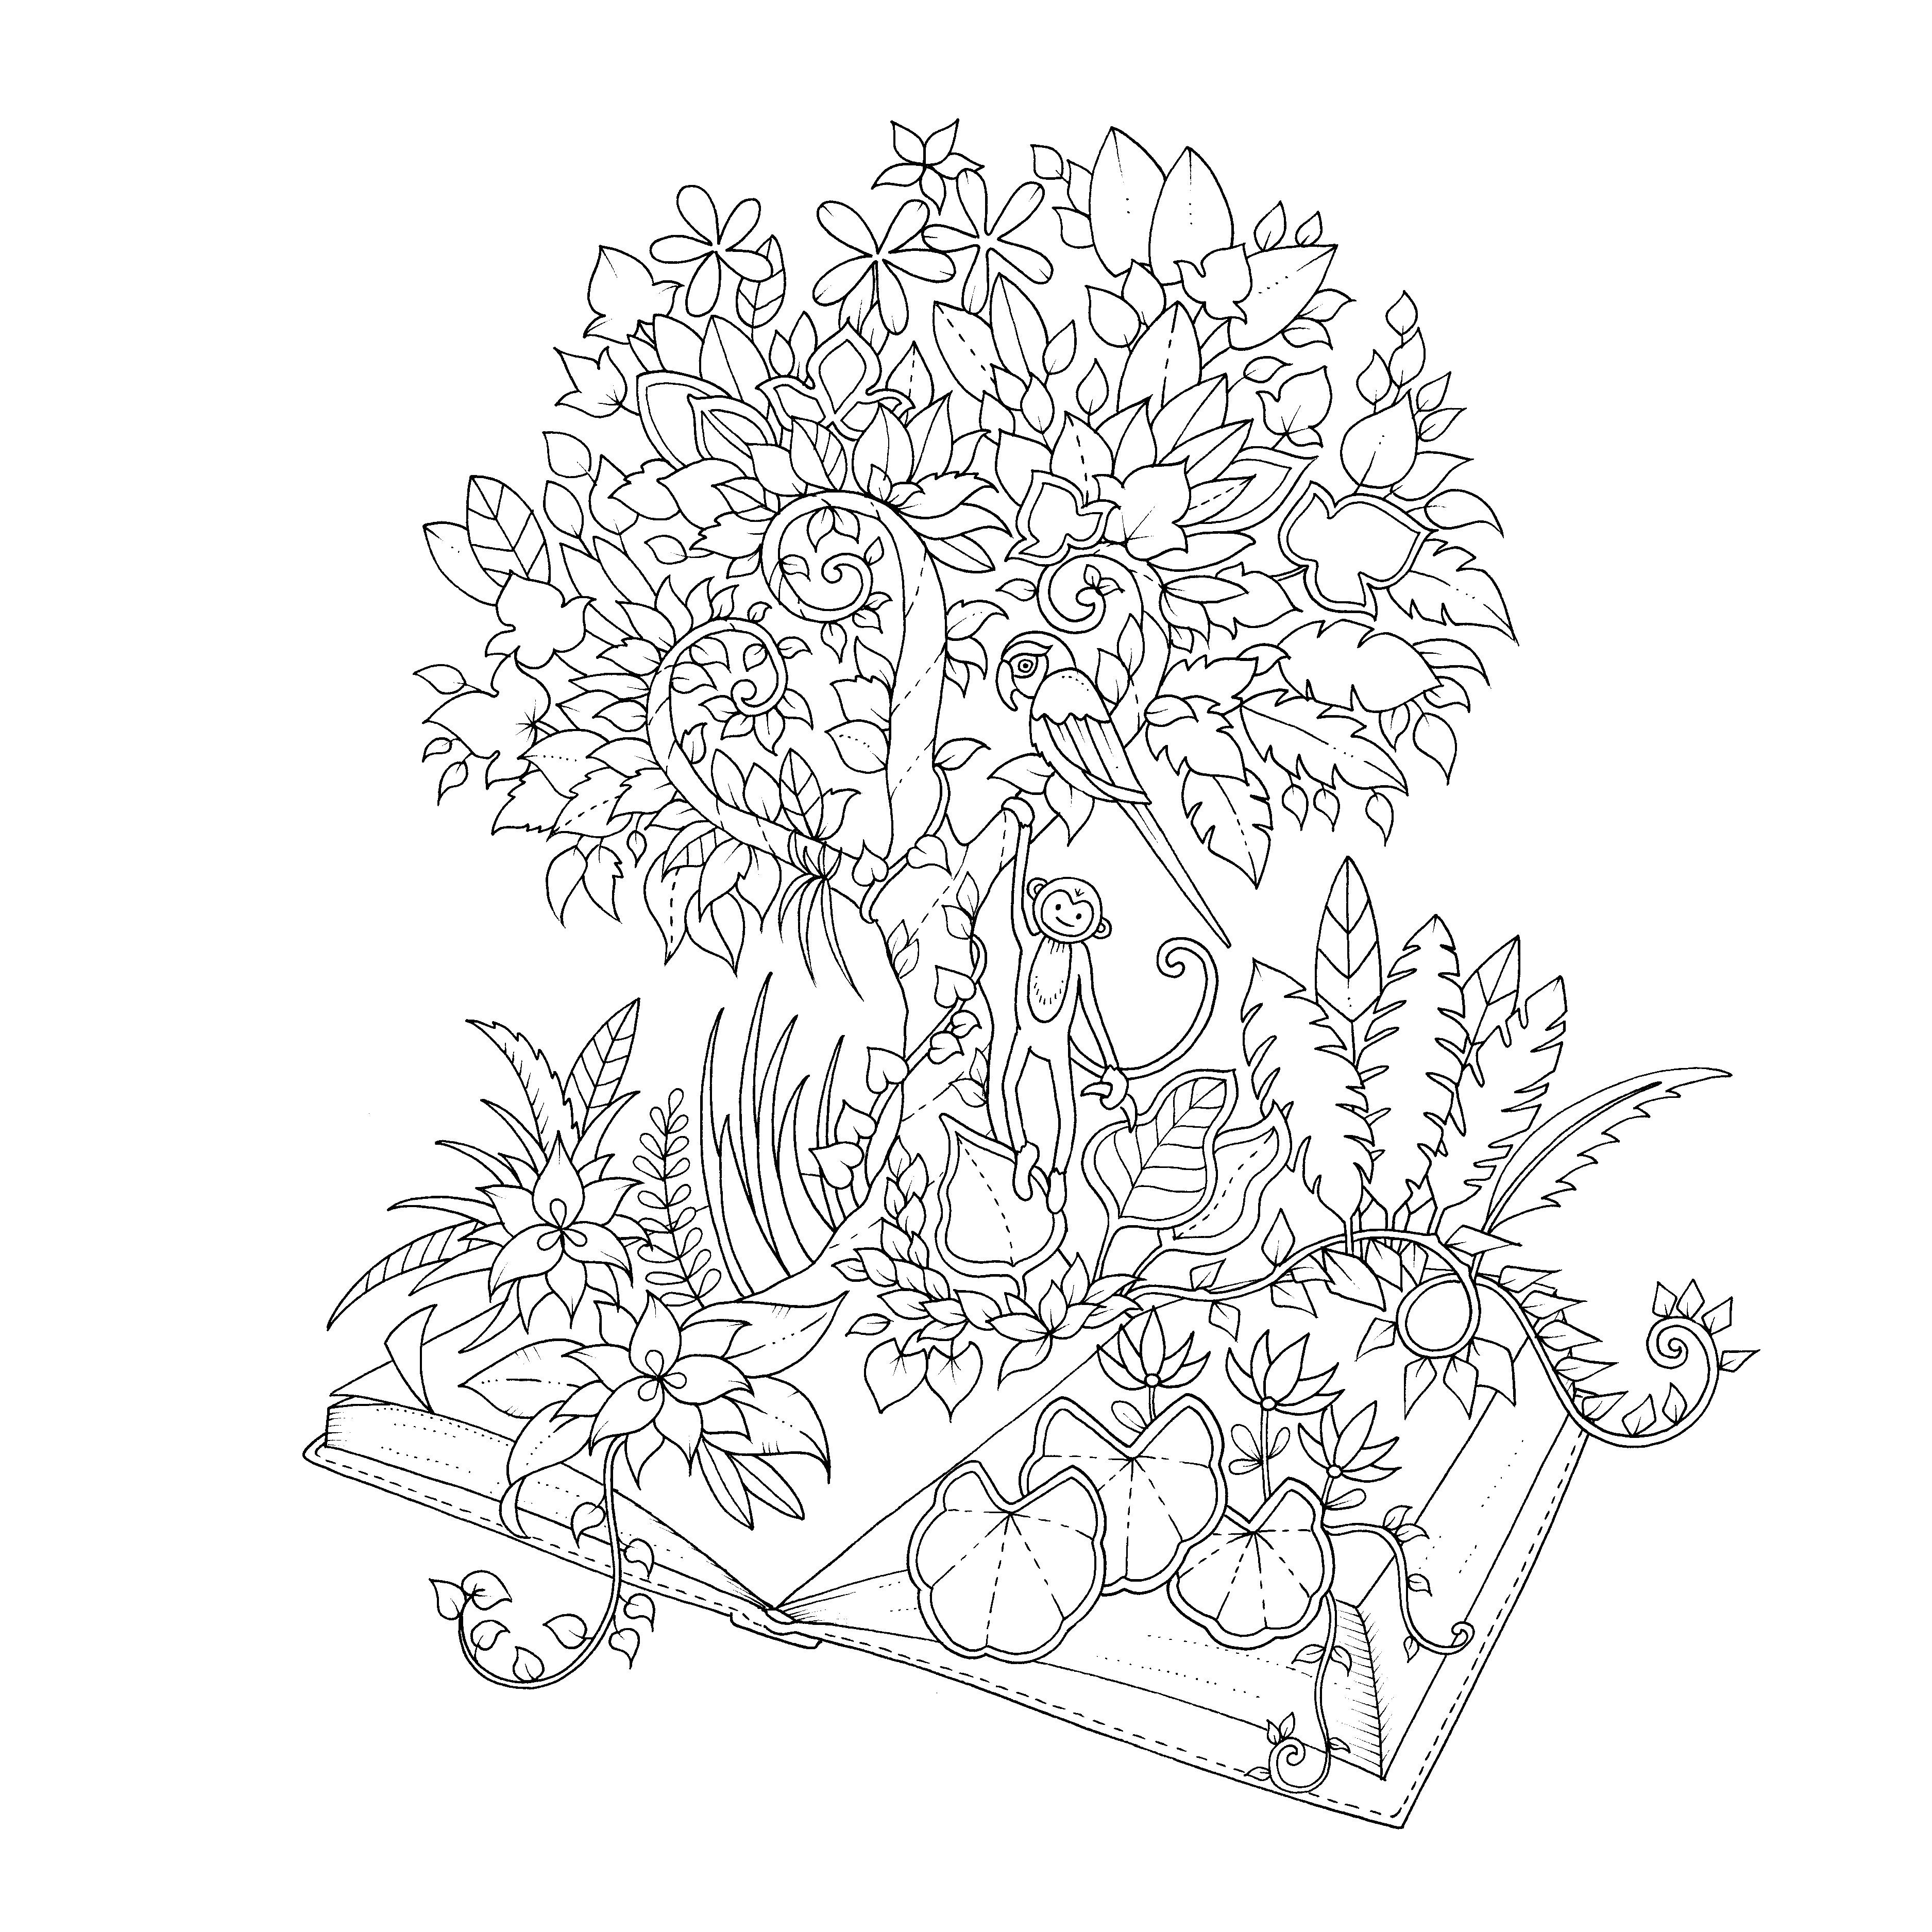 Enchanted Forest Drawing Book at GetDrawings.com   Free for personal ...